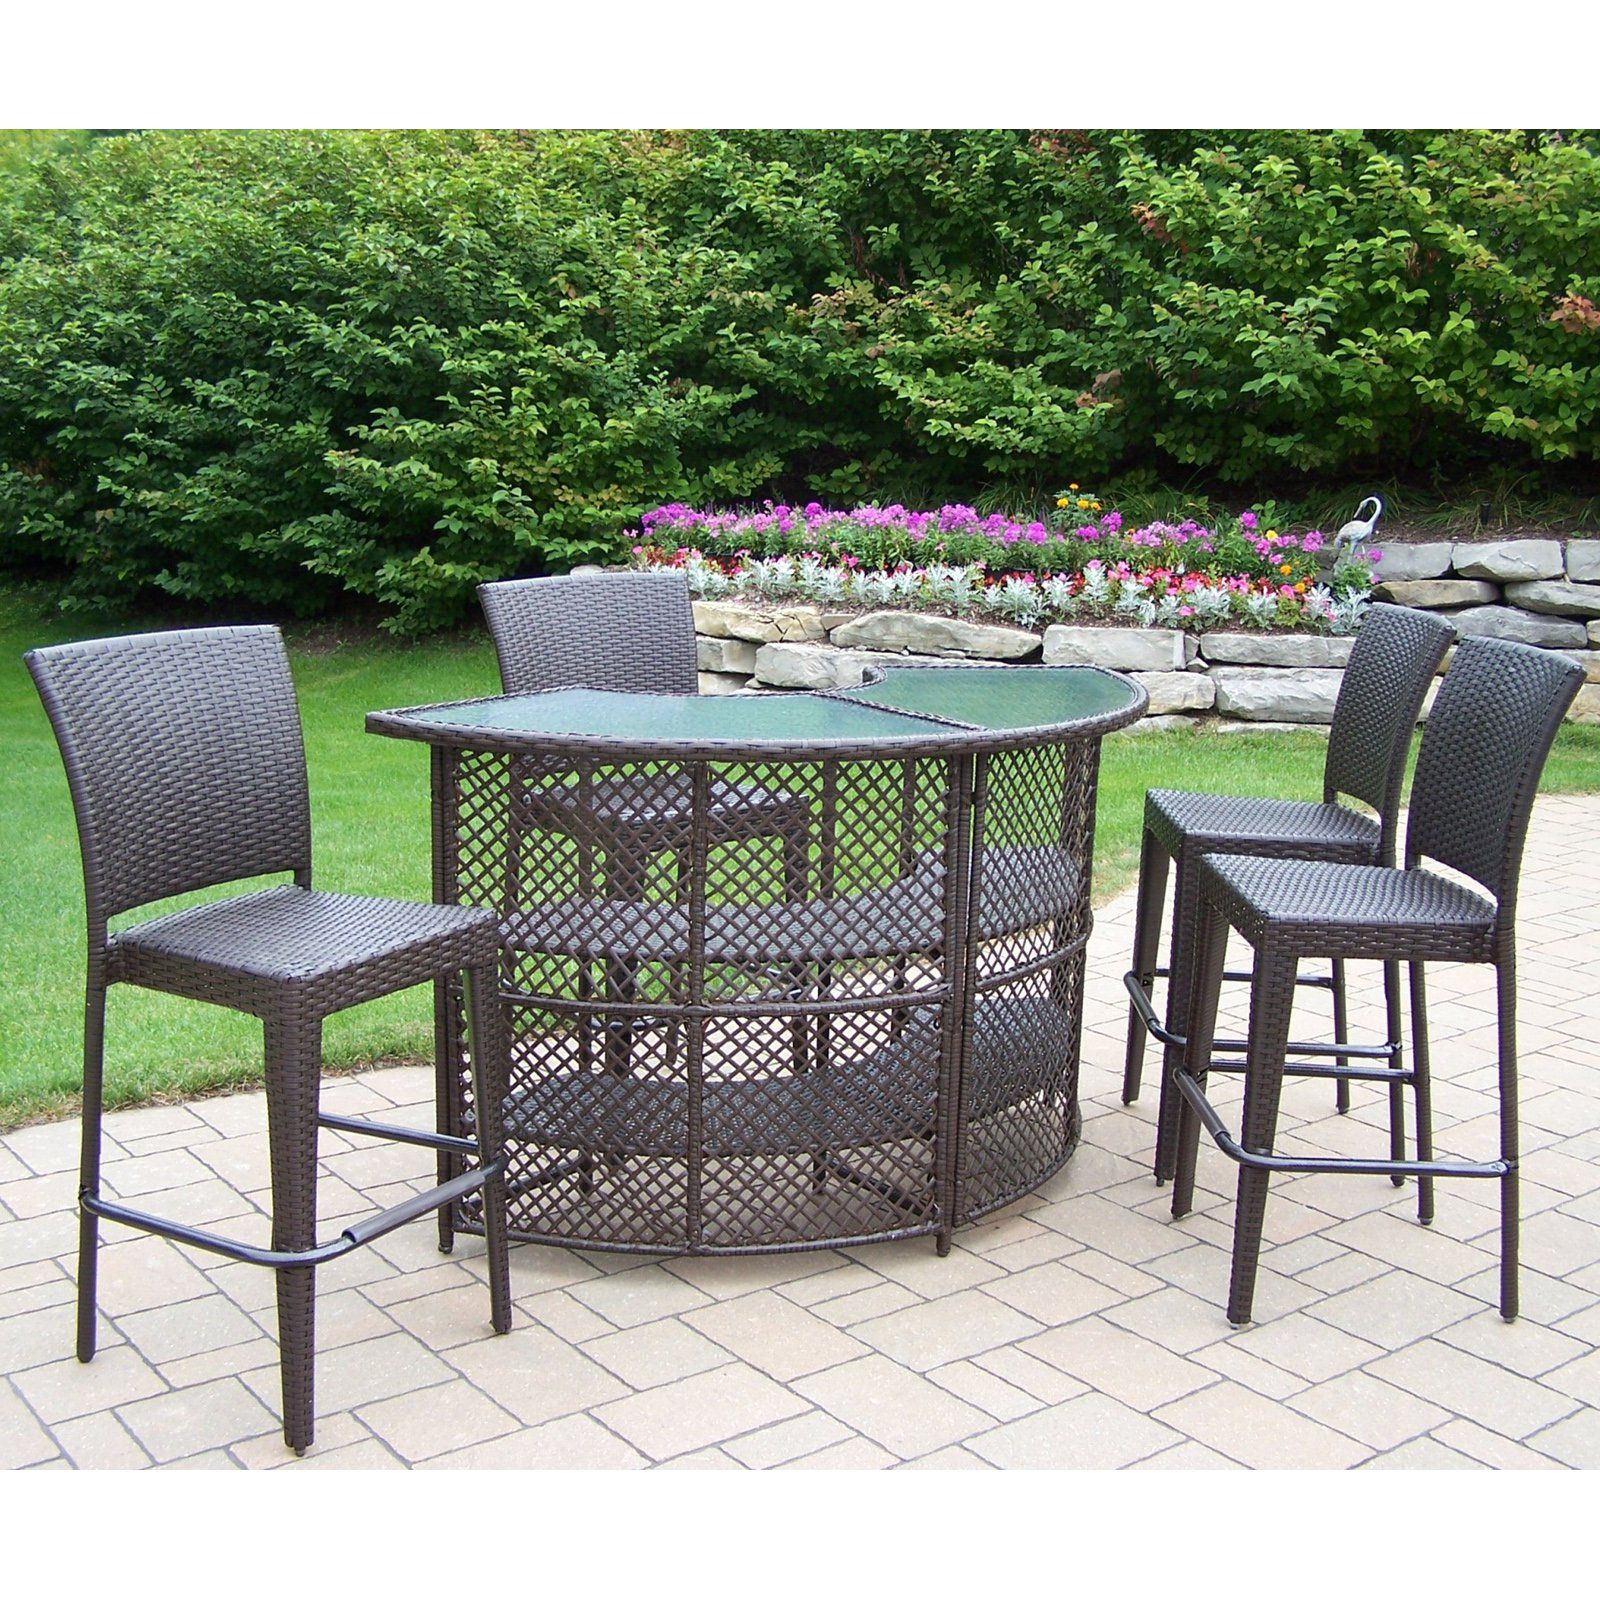 patio sale designs for bars tables buffalo near boston set bar chicago goods size exterior me houston sets stools outdoor furniture ideas expert chairs outside full ny